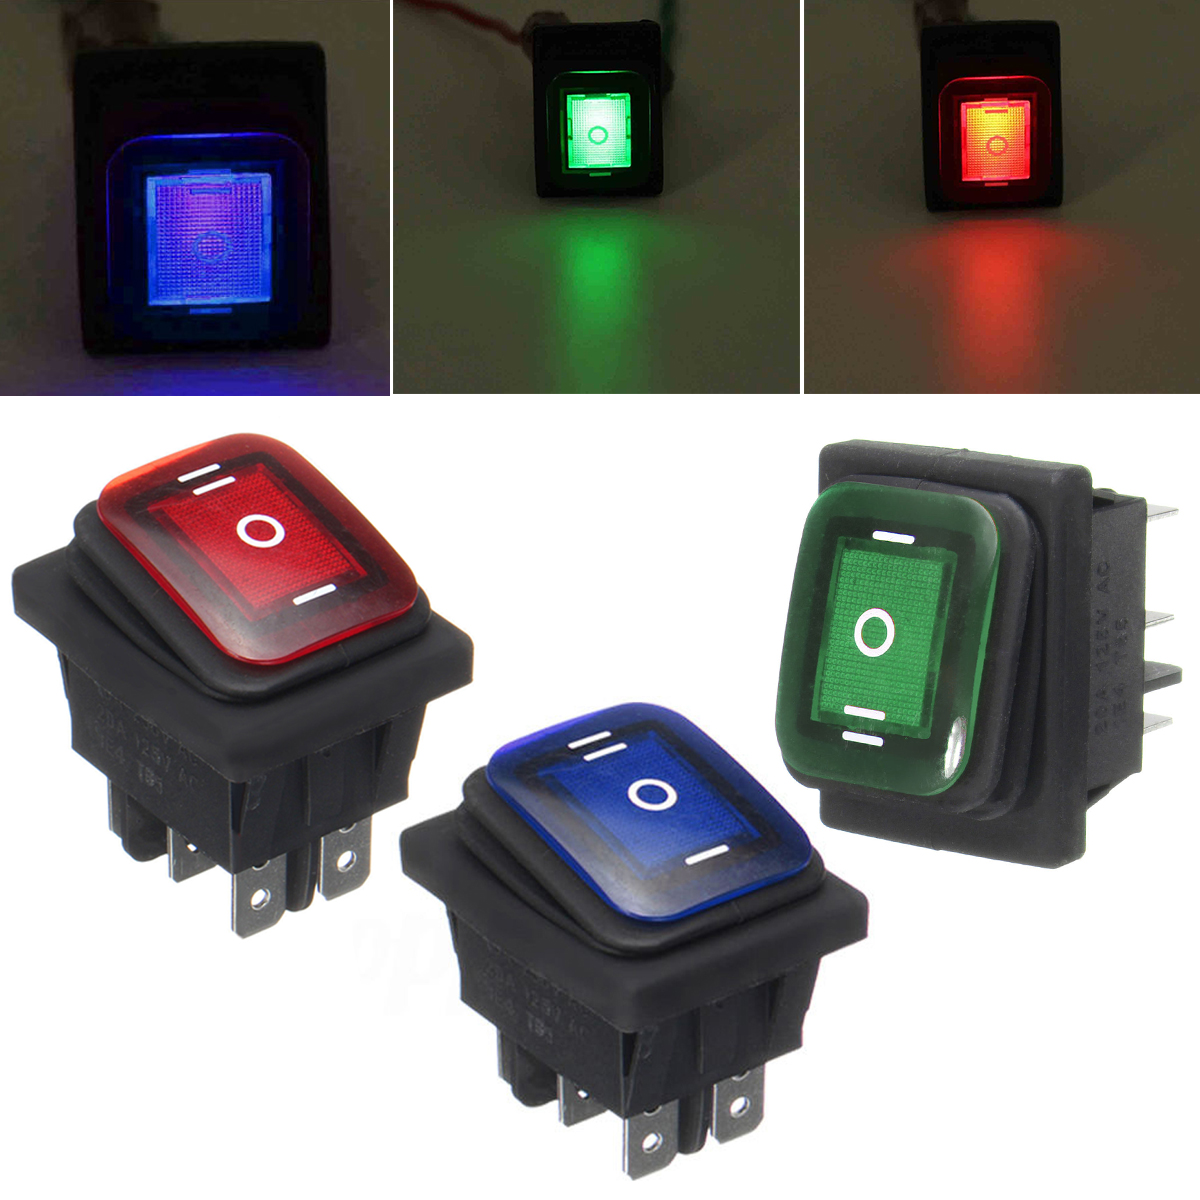 1pc/2pcs Durable Rocker Toggle Switch Mayitr On-Off-On 6 Pins 12V DC Car Boat Automobiles Waterproof LED Latching Switches 3pcs waterproof led rocker toggle switch on off button led light for car boat buses motorcycles 12v 20a 4pin for ford vw audi